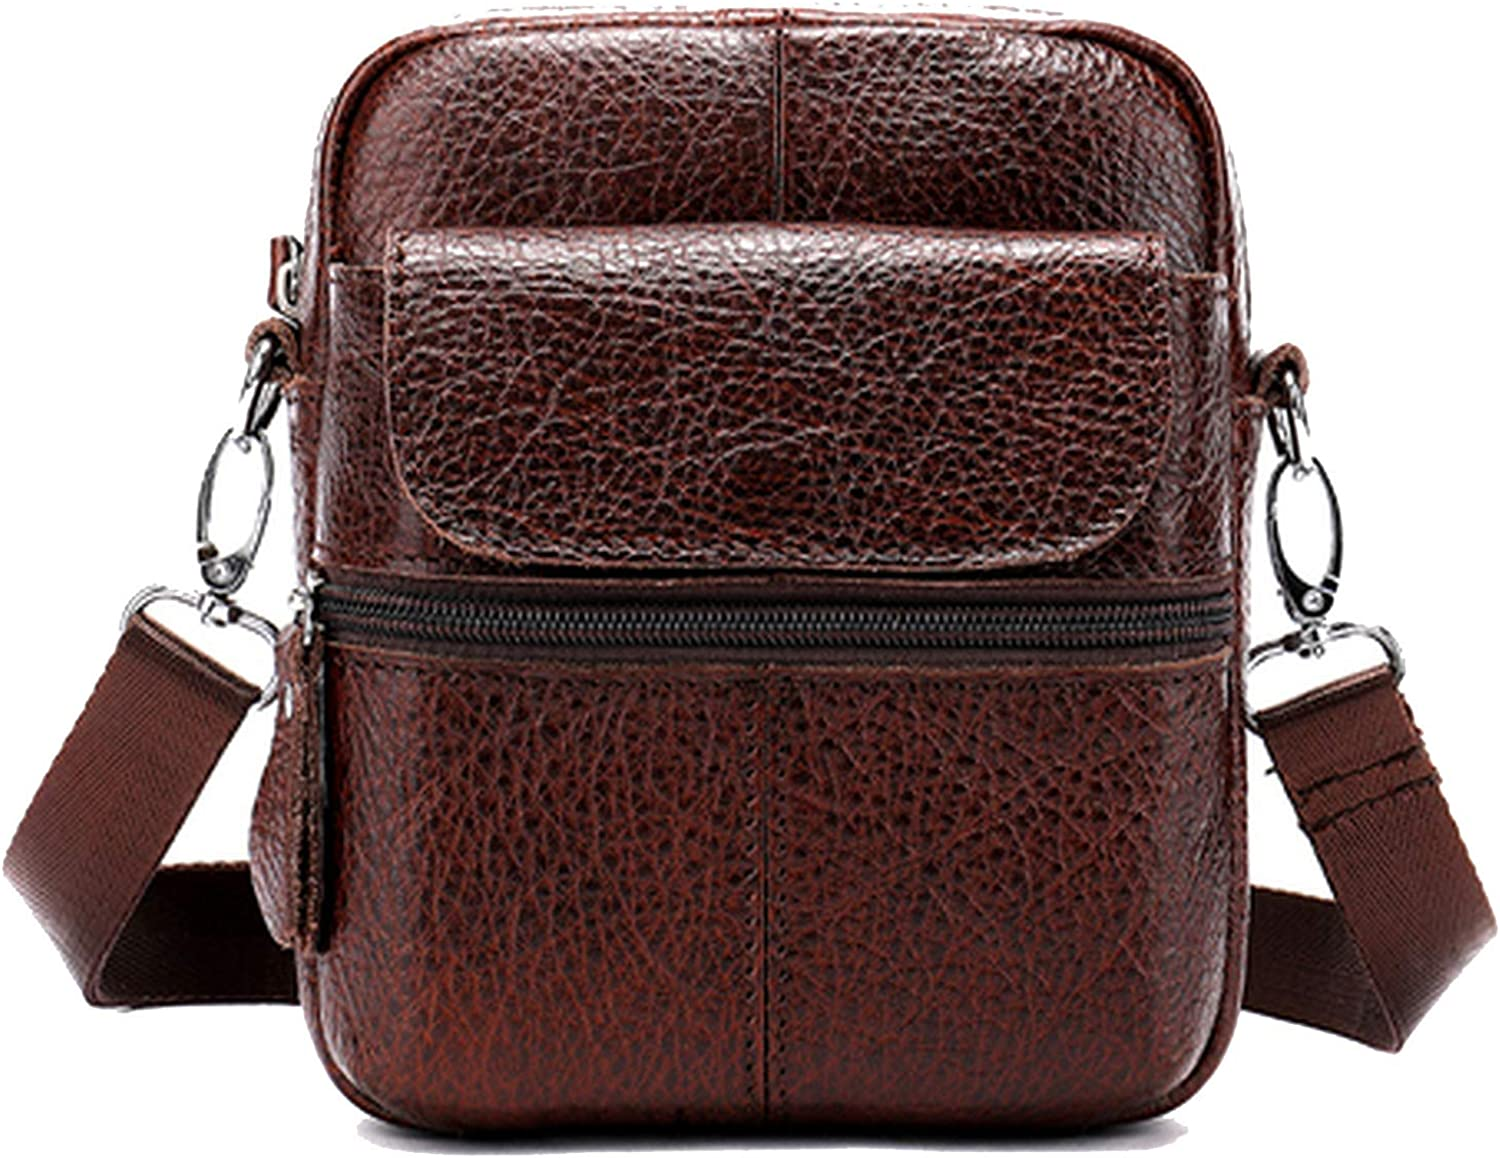 Messenger Bag MenS Shoulder Genuine Leather Bags Flap Small Male Man Crossbody Bags For Men Natural Leather Bag,8628coffee,Russian Federation